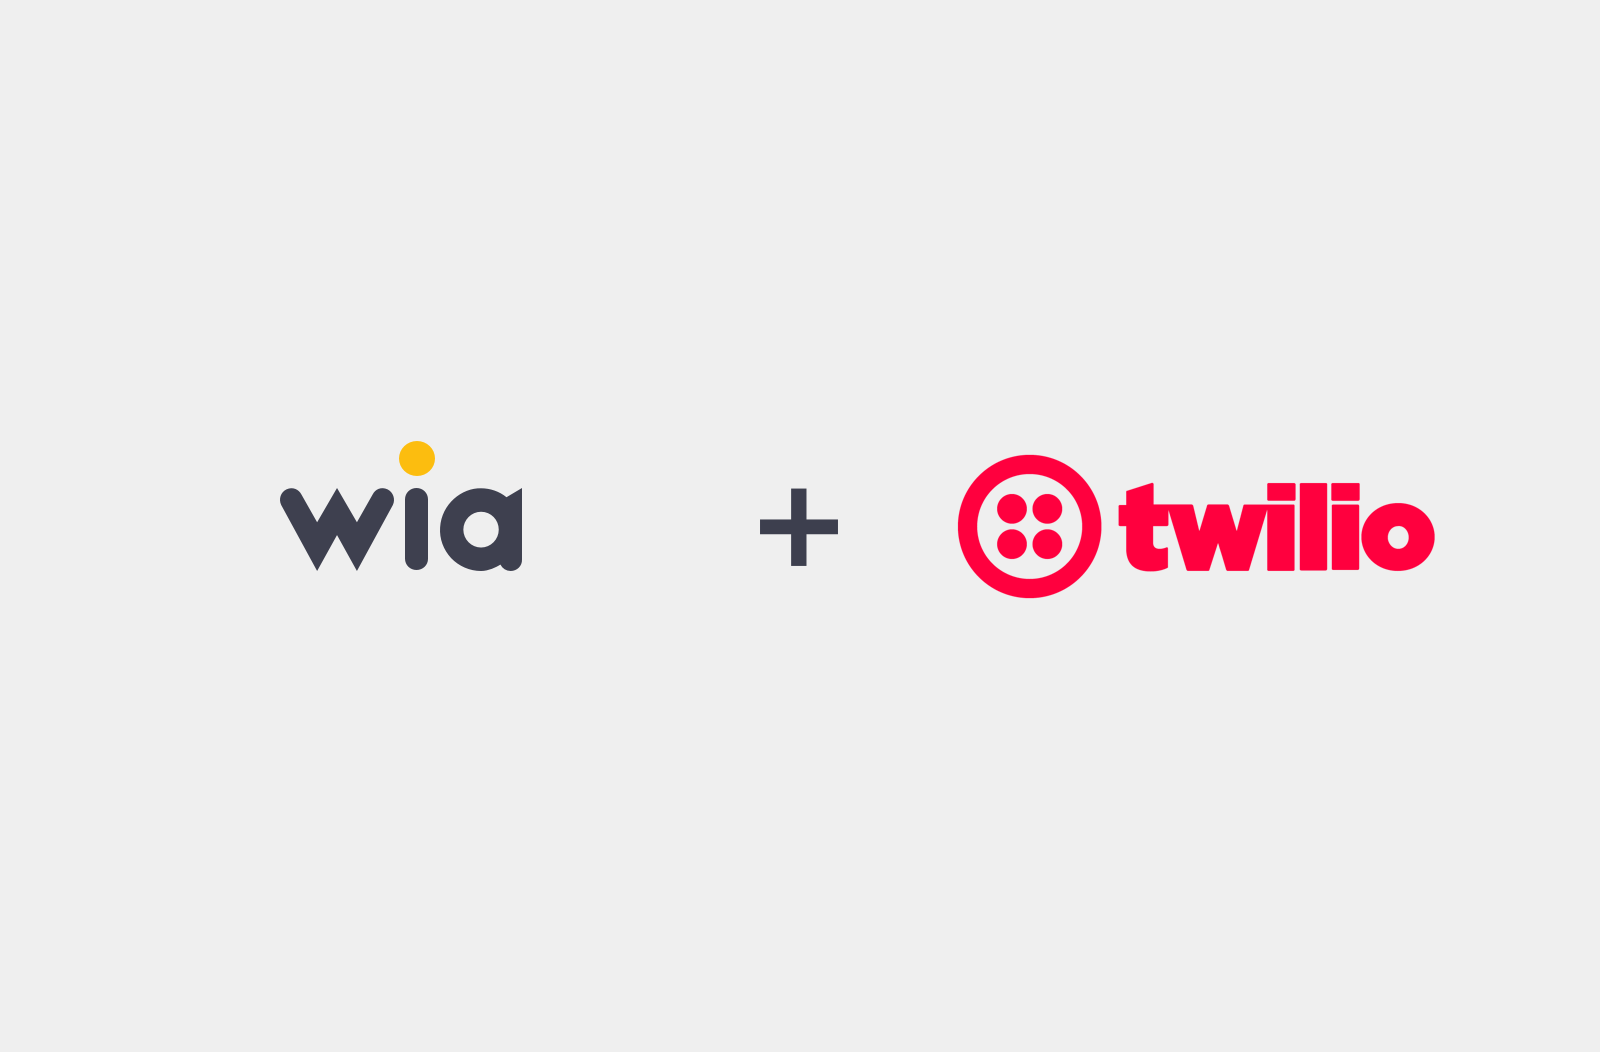 Wia and Twilio